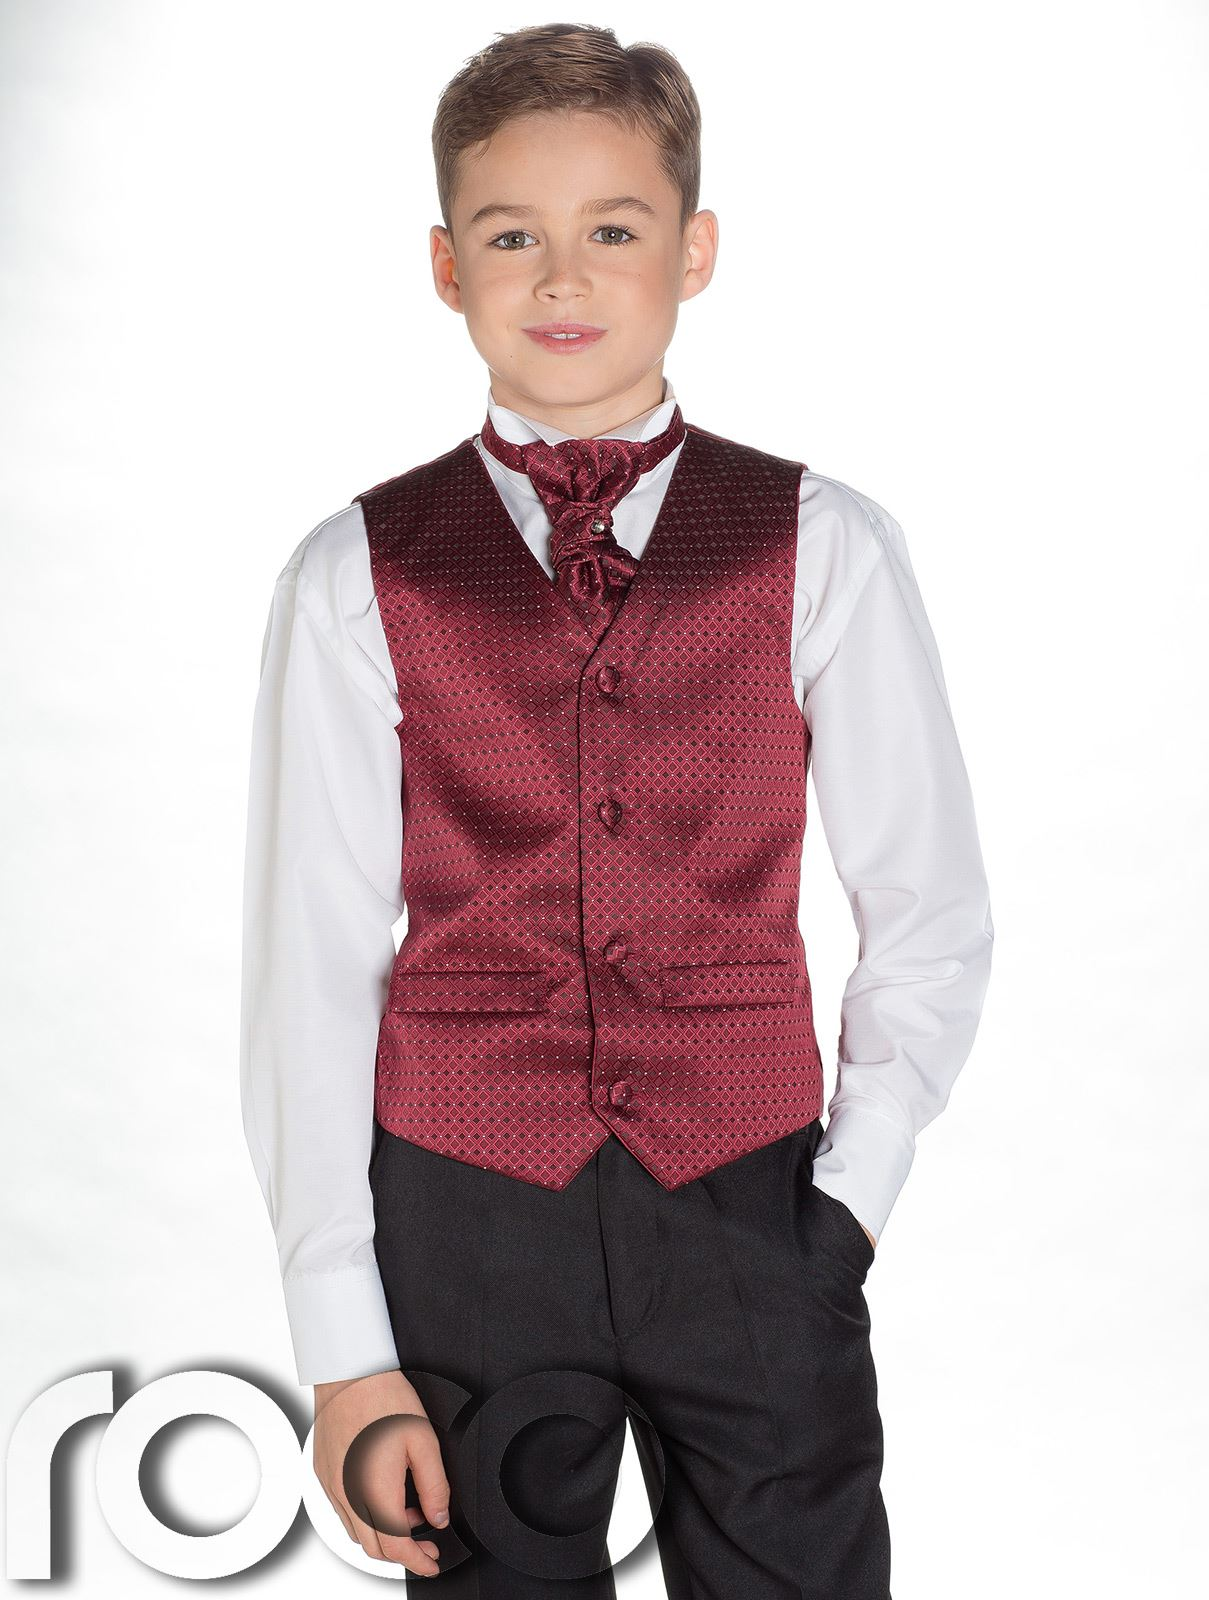 Shop for boys waistcoats at neyschelethel.ga Next day delivery and free returns available. s of products online. Buy boys waistcoats now!